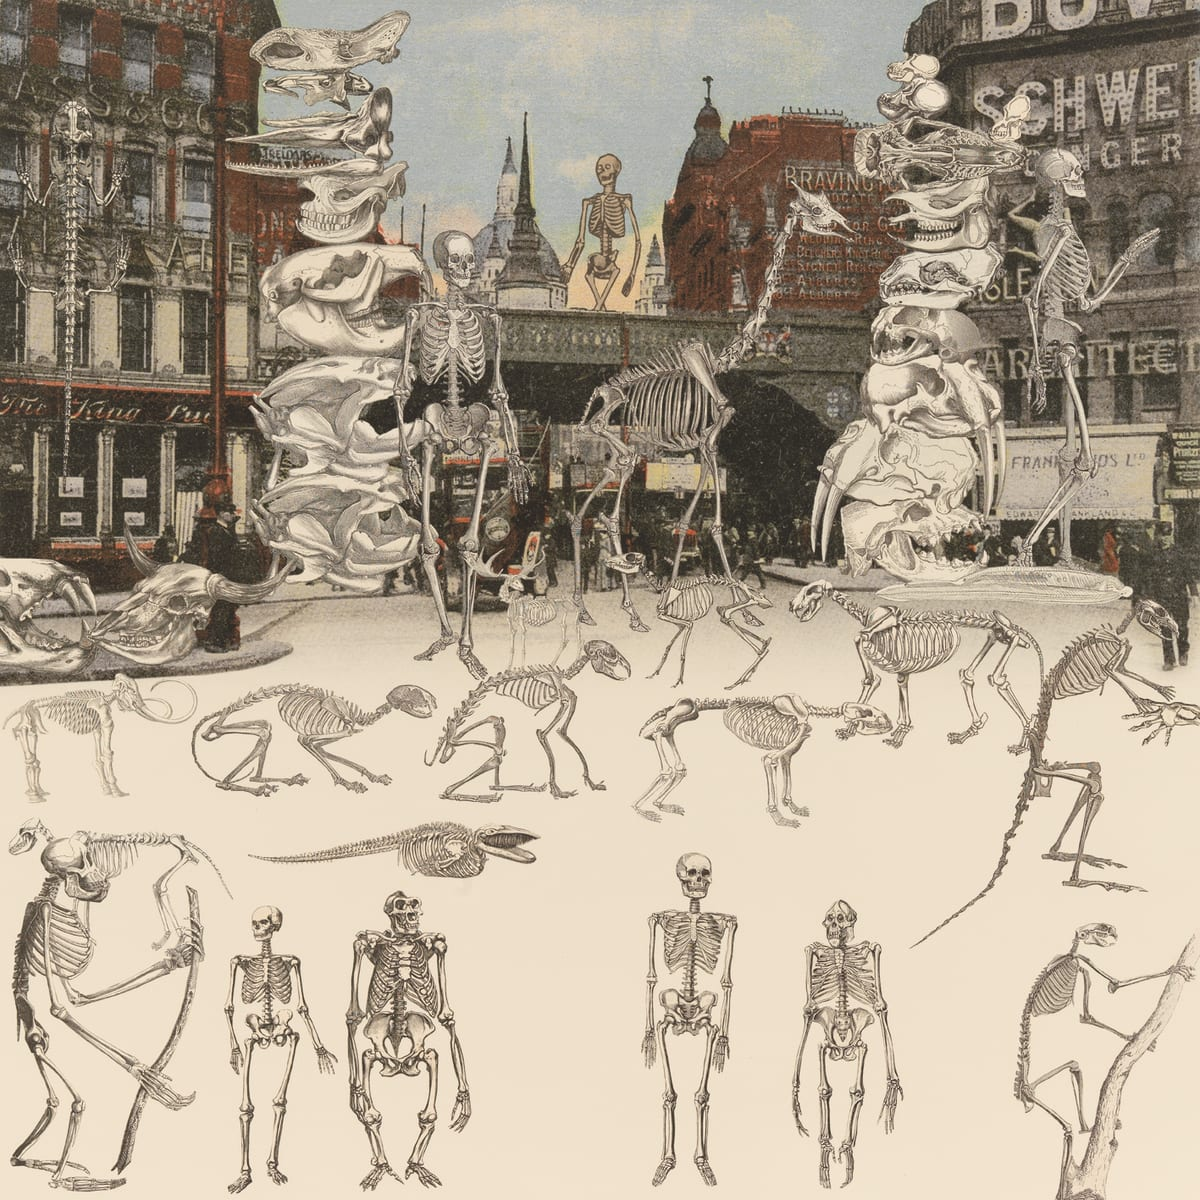 Peter Blake London- Ludgate Circus- Day of the Skeletons, 2012 Silkscreen print on 410gsm Somerset Tub Sized Signed and numbered by artist. 66.6. x 65.2 cm Edition of 100